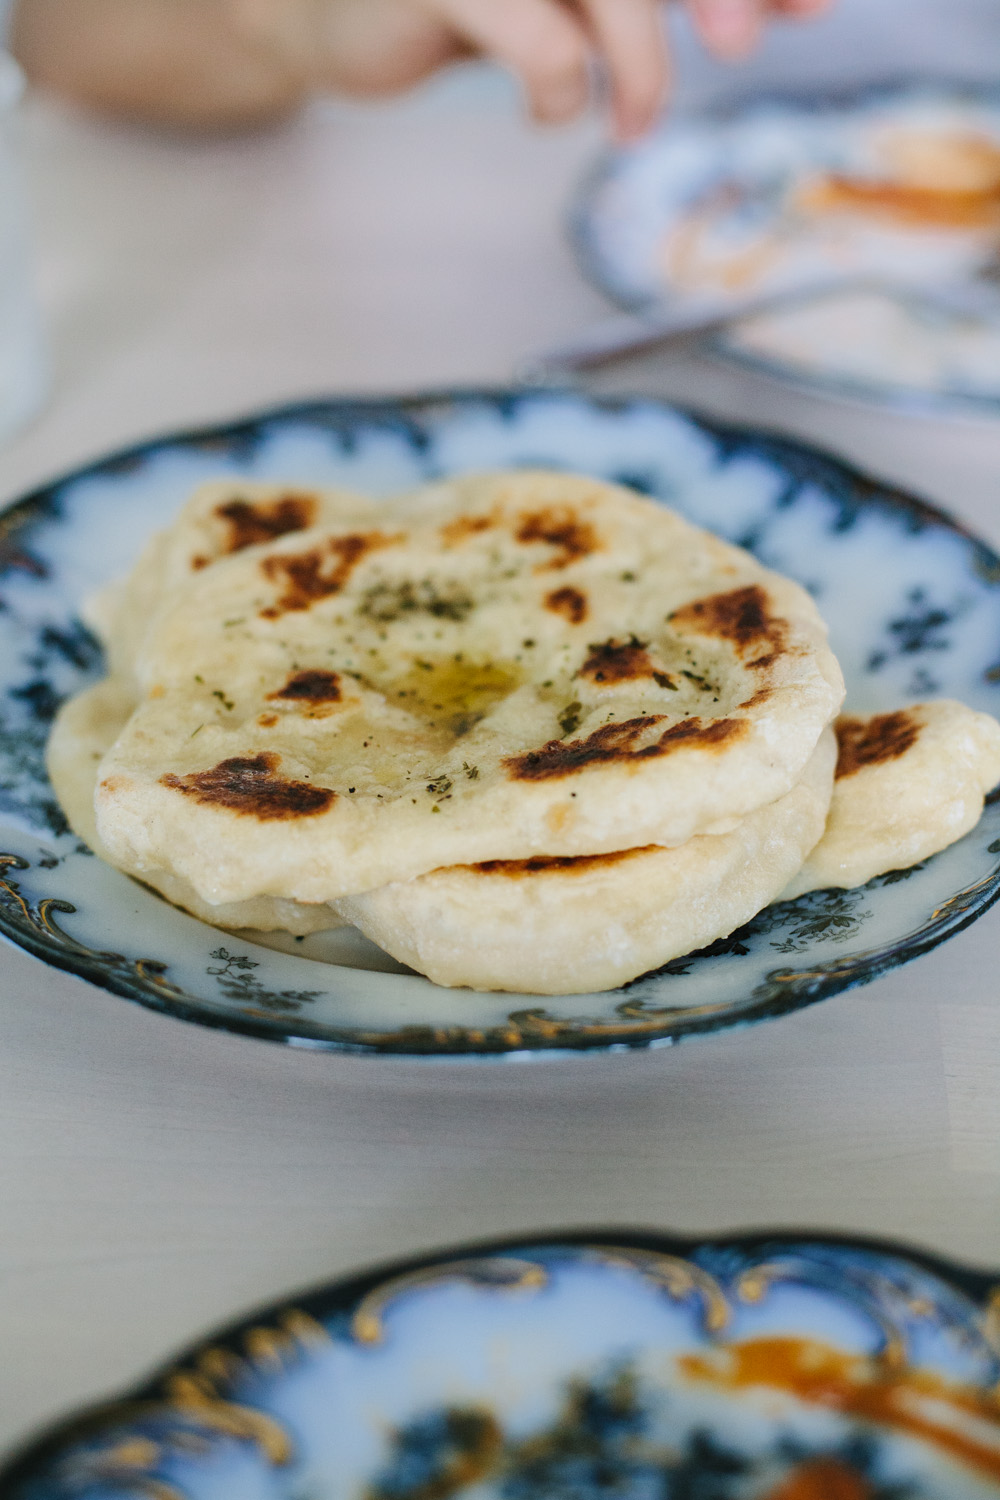 sourdough naan made from discard